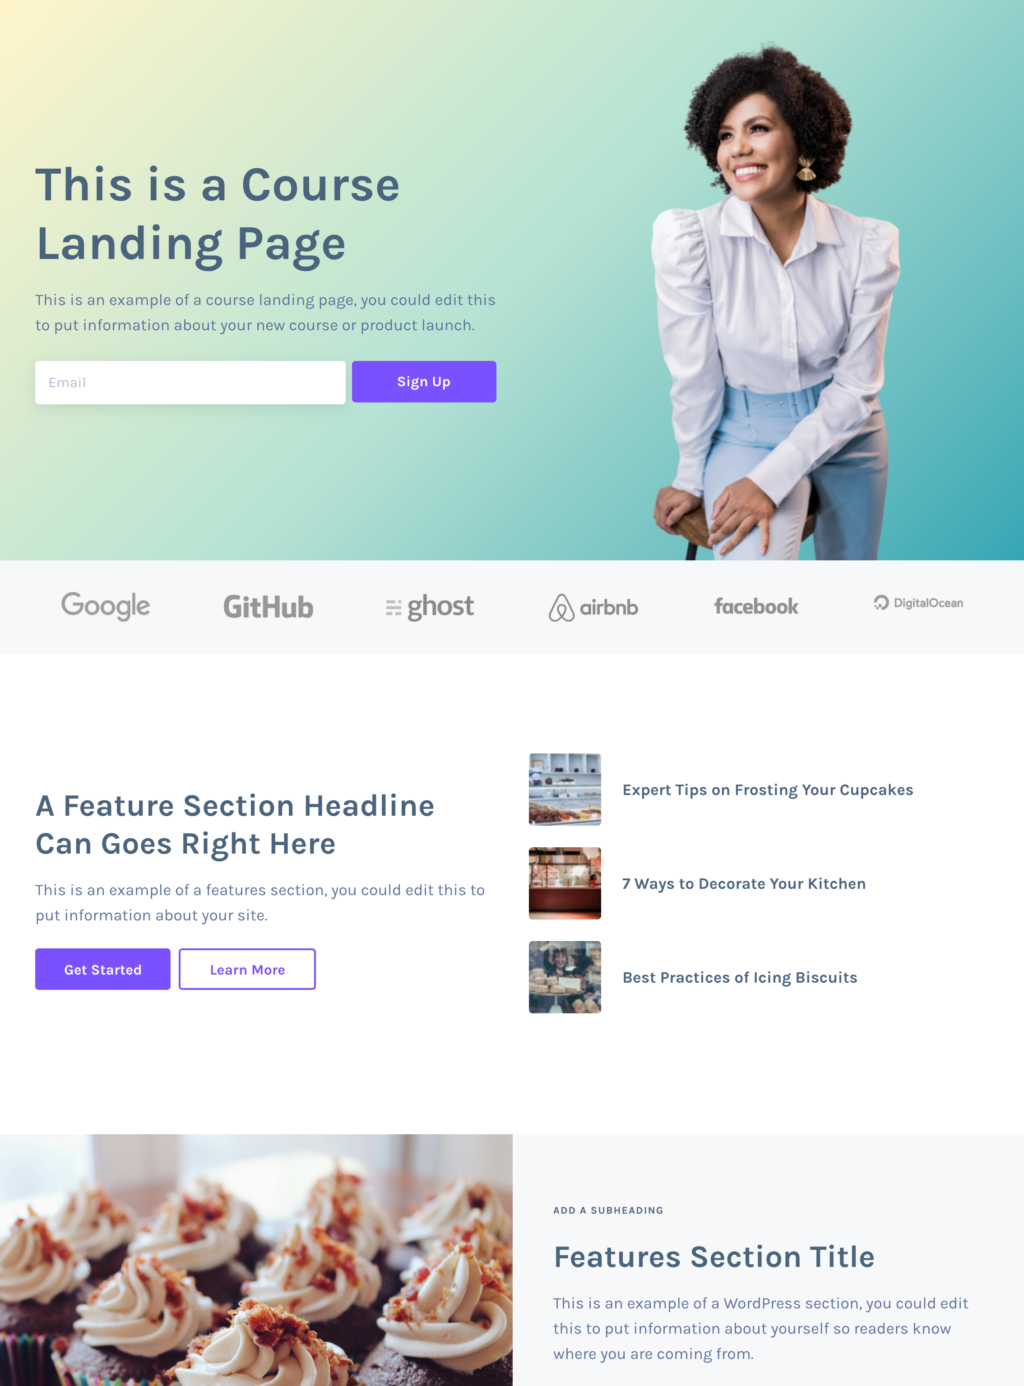 Landing page layout for courses